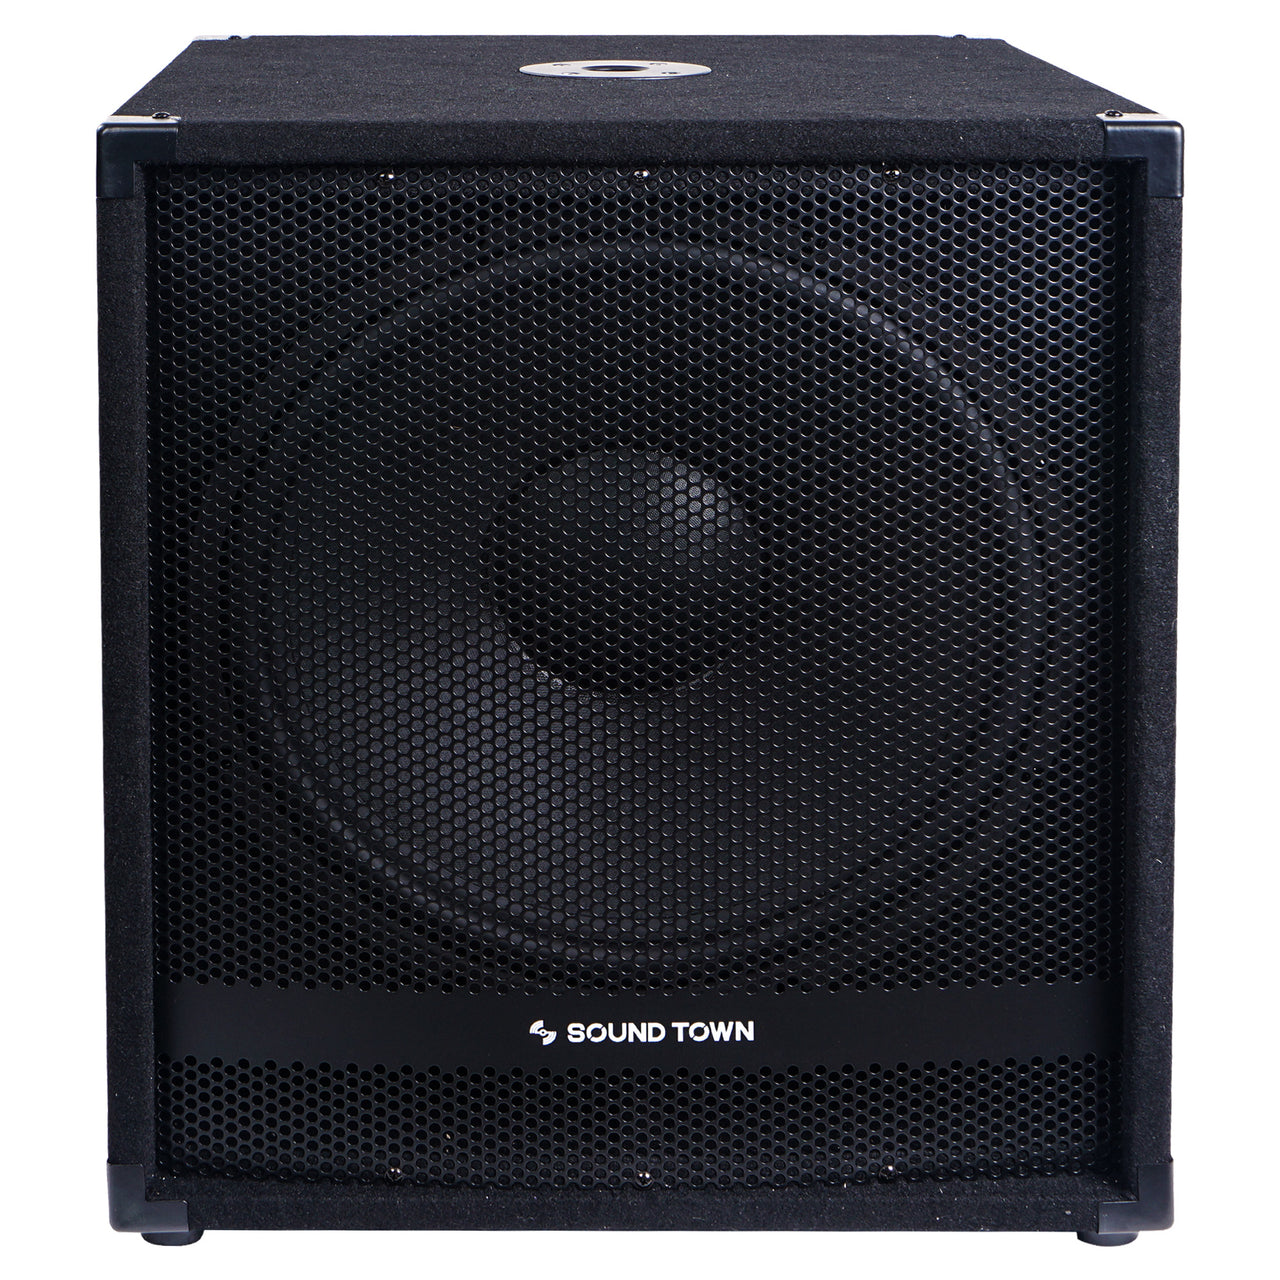 Sound Town METIS-18SDPW METIS Series 2400 Watts 18 Powered PA DJ Subwoofer with Class-D Amplifier, 4-inch Voice Coil - Front Panel